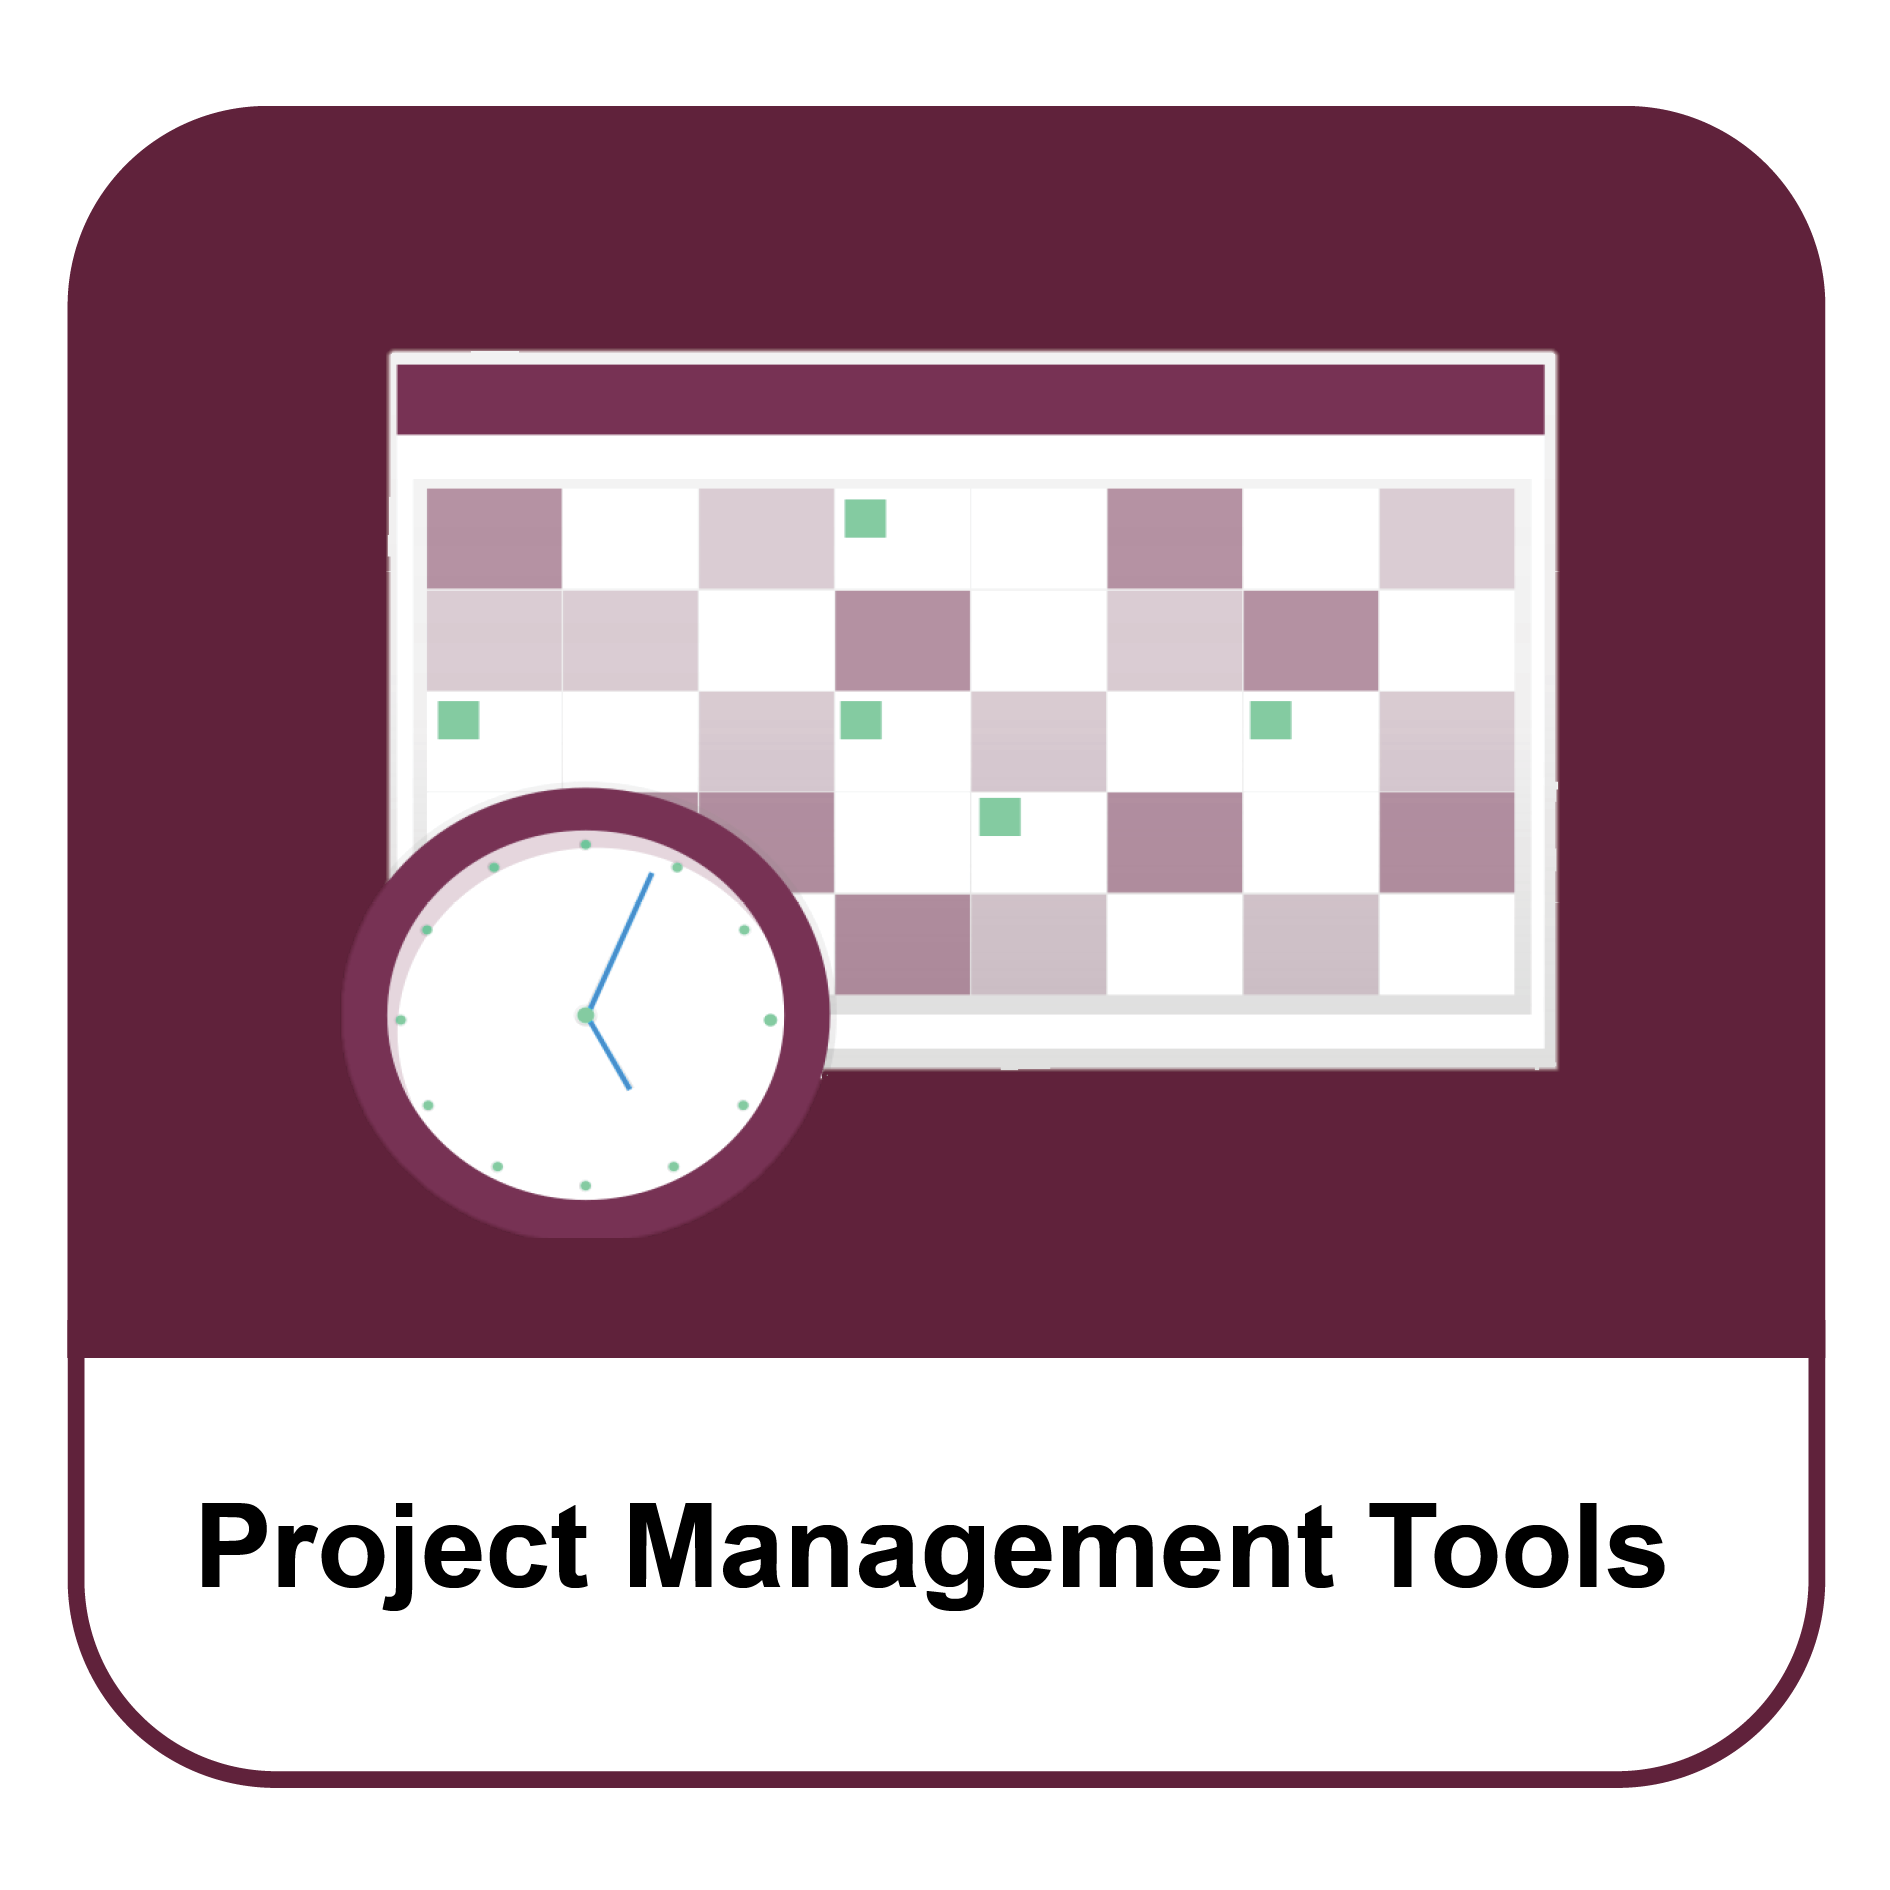 project managements tools resources icon updated.png